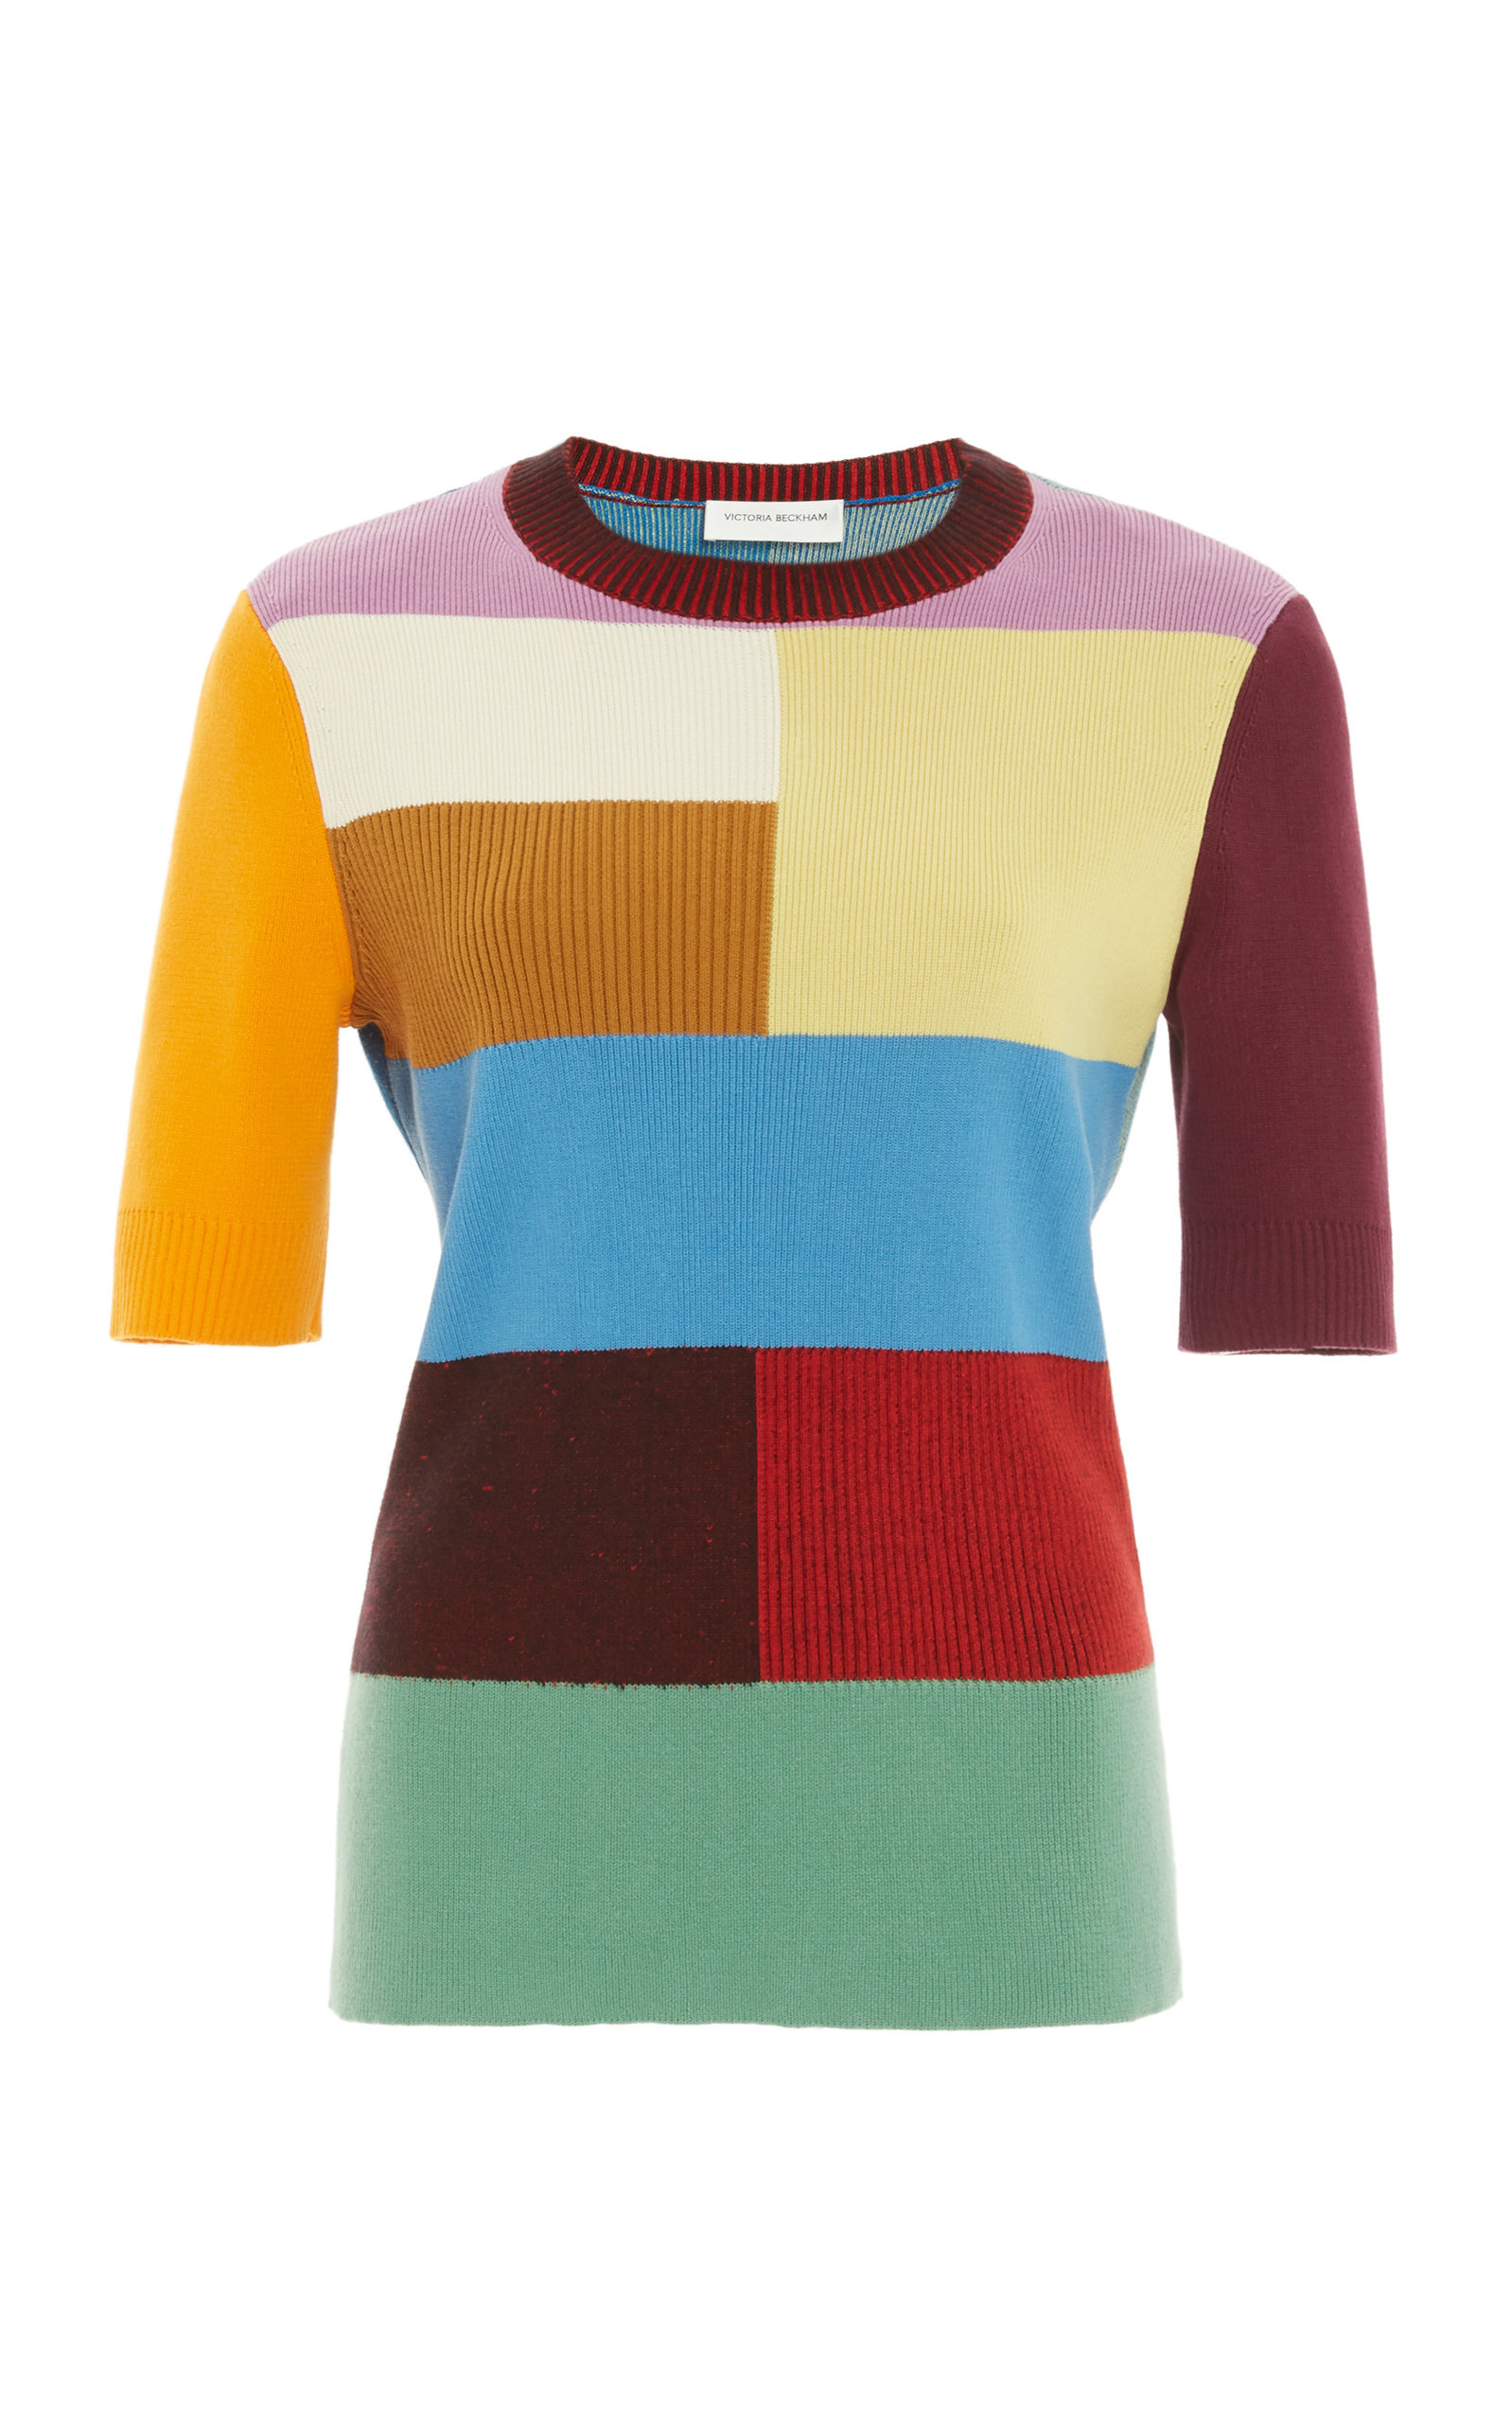 Victoria Beckham Colorblocked Knit Top In Multi